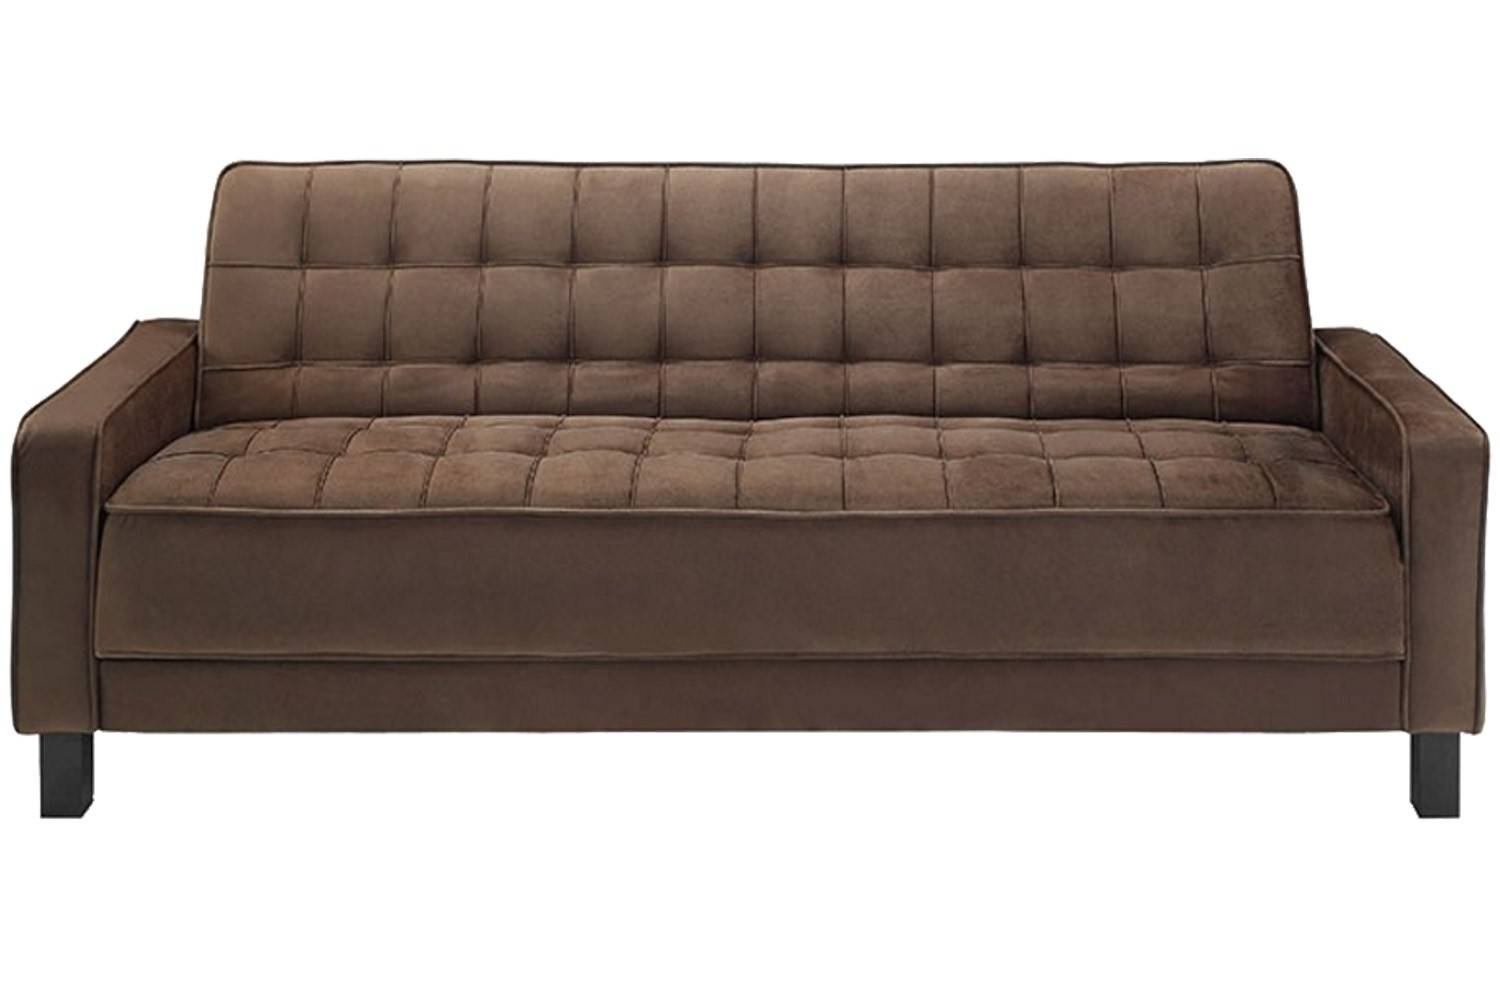 Convertible Mckinley Brown Sofa Bed | Mckinley Brown Euro Lounger intended for Euro Loungers (Image 1 of 15)